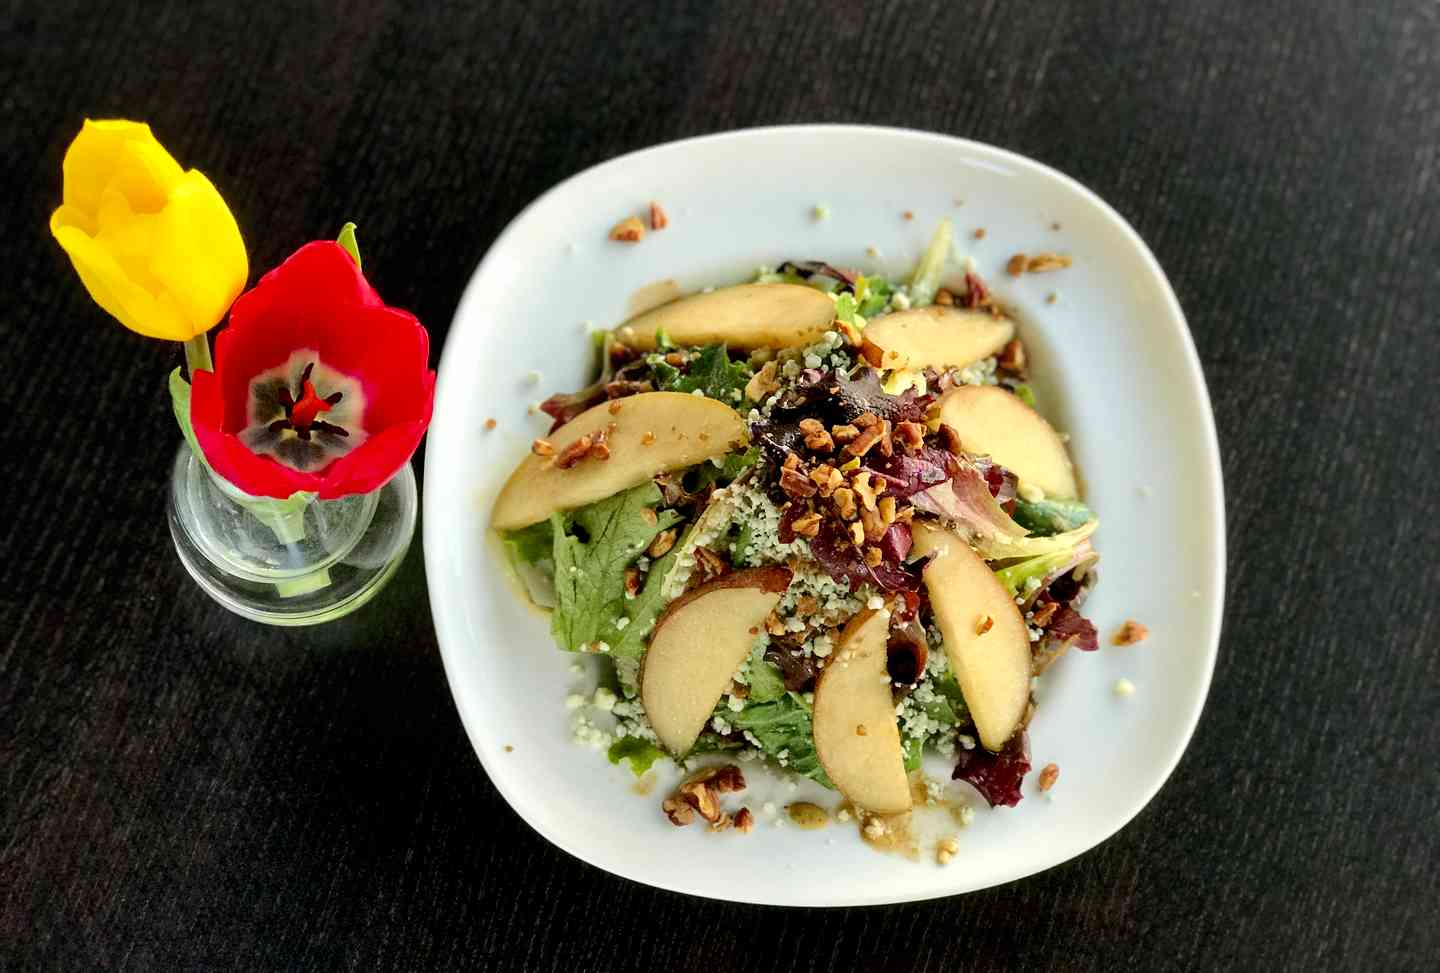 *Caramelized Red Pear, Candied Pecan& Goat Cheese Salad w/ Red Wine Vinaigrette